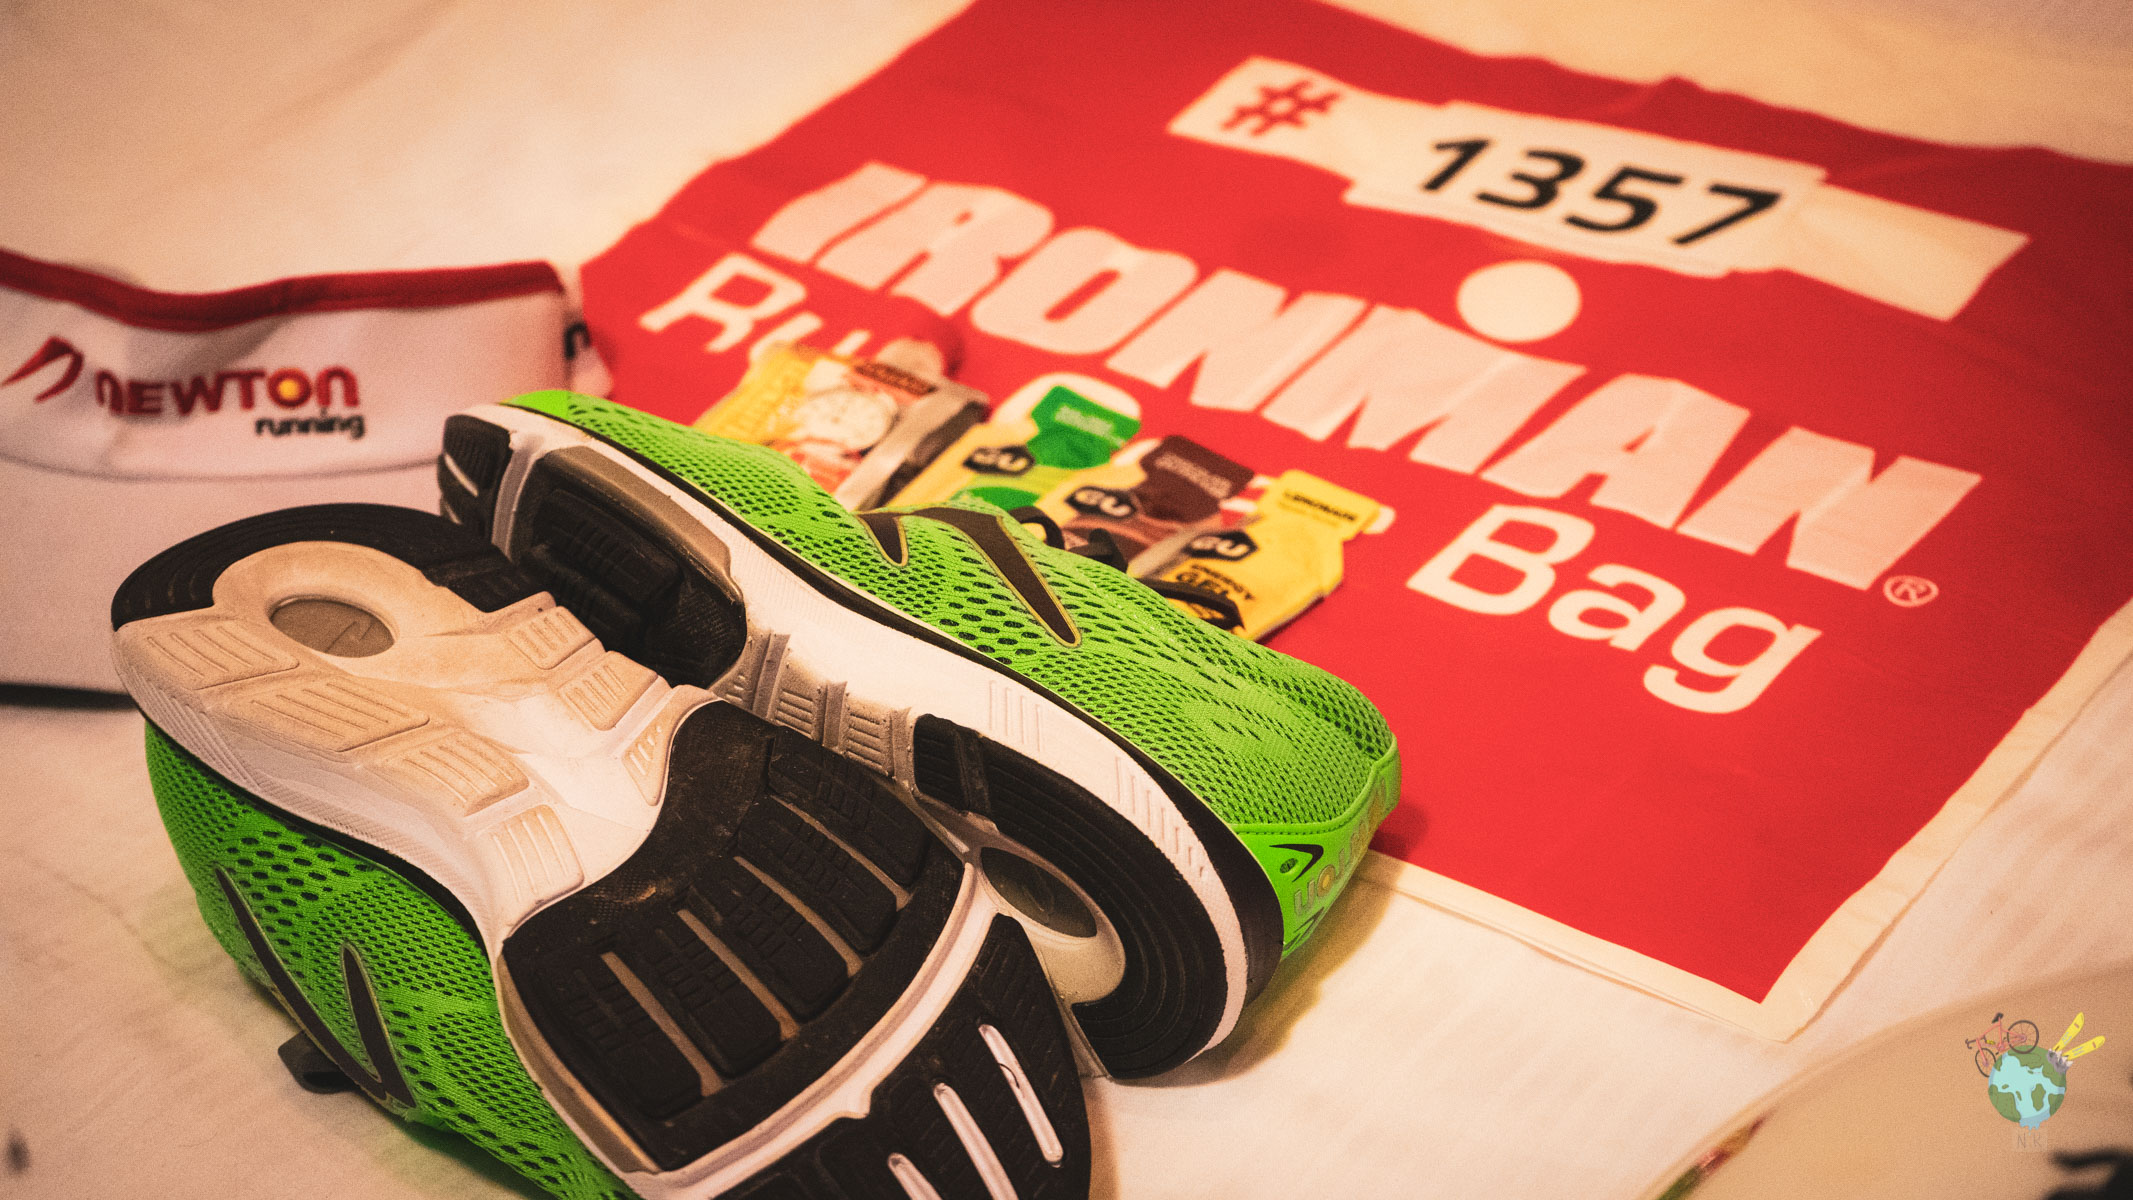 run bag ironman italy